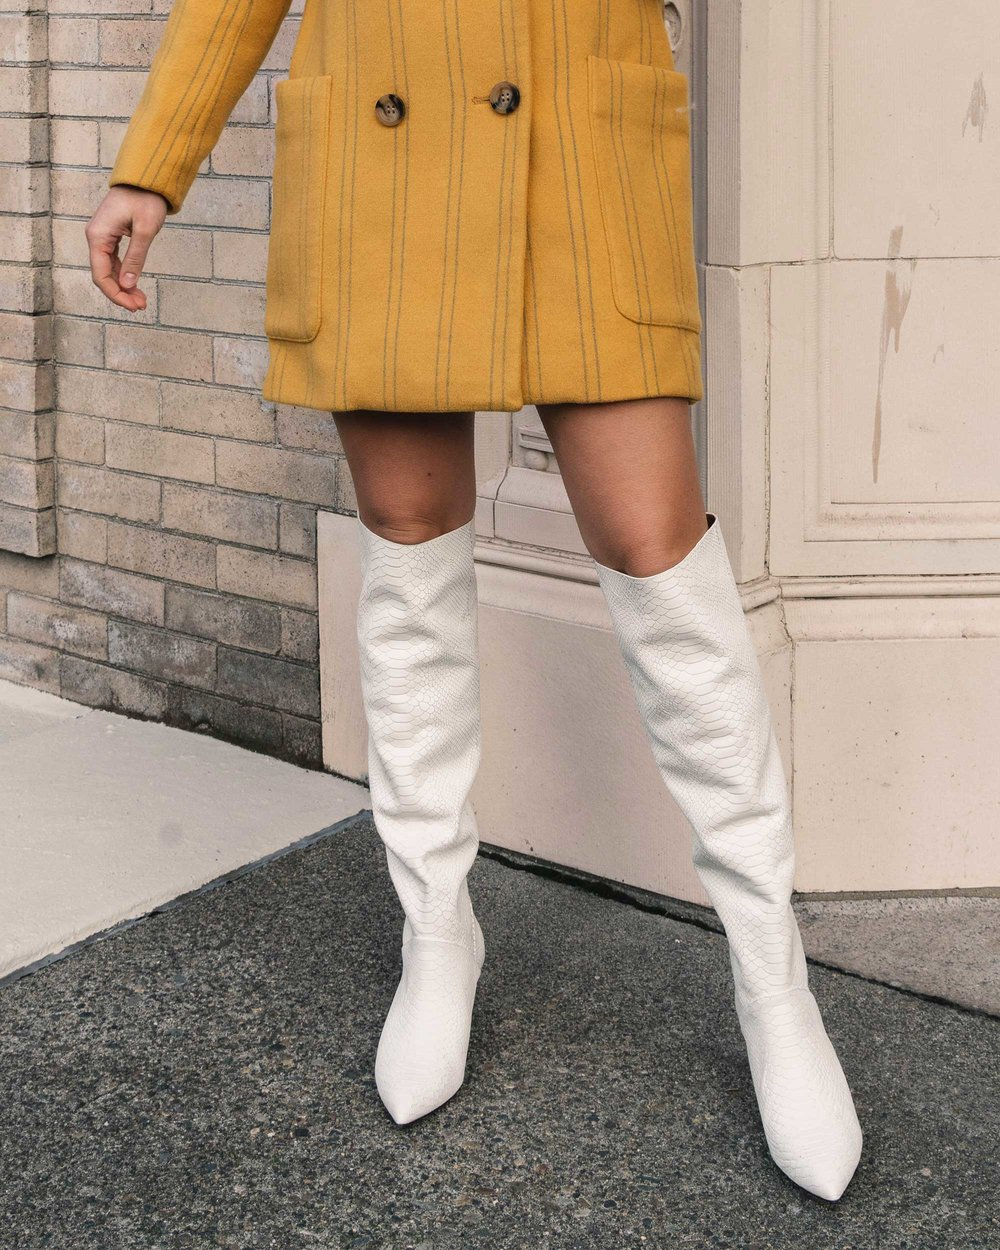 Sarah Butler of Sarah Styles Seattle wears Joie Revet White Snake Print Tall Boots and Madewell Double-Breasted Yellow Coat | @sarahchristine1.jpg